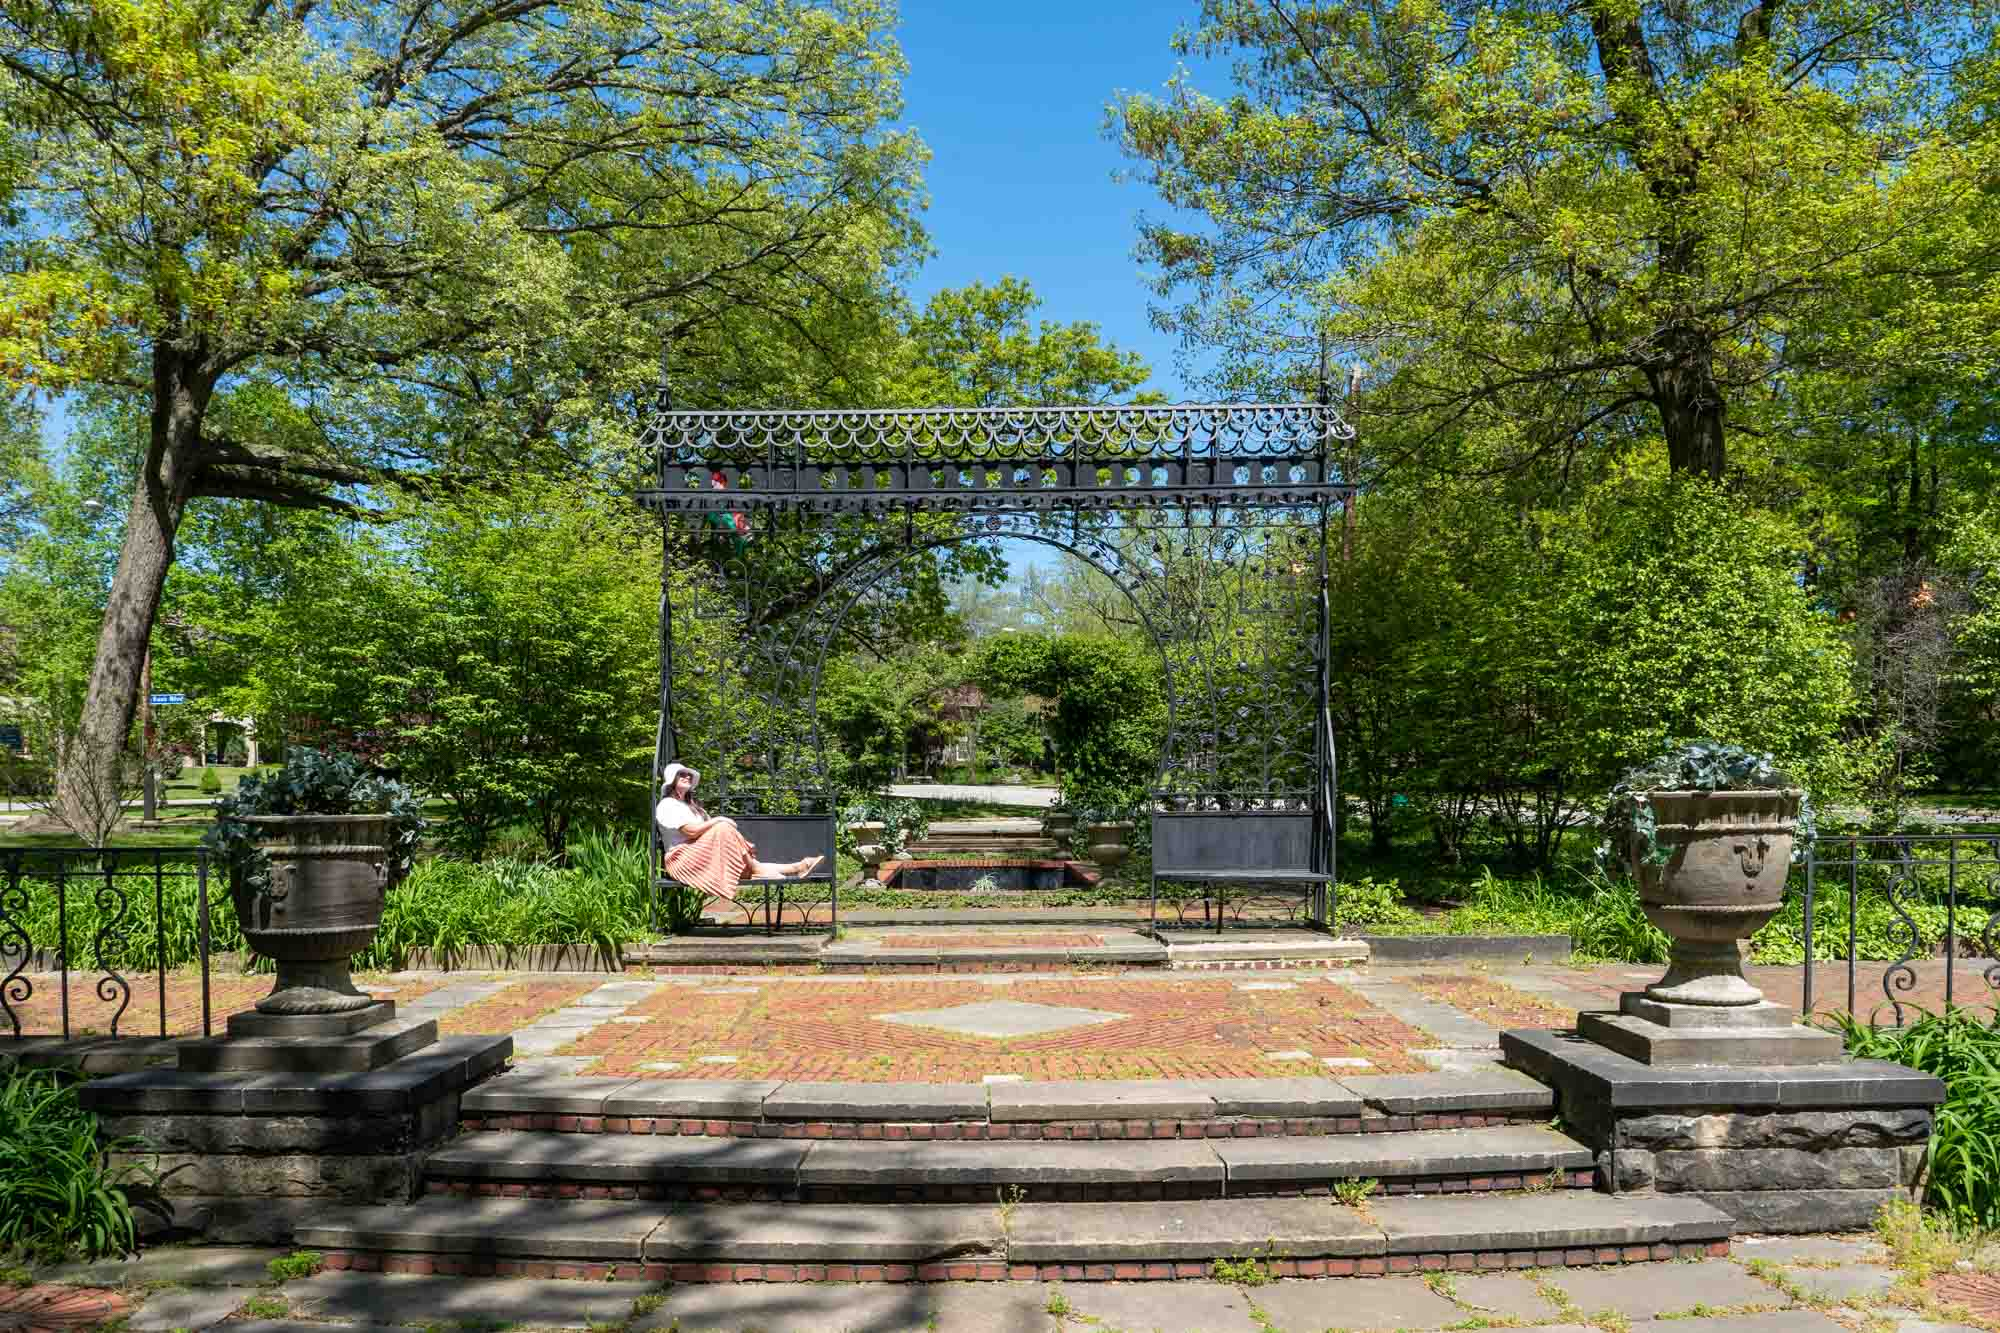 A Guide to Enjoying the Cleveland Cultural Gardens